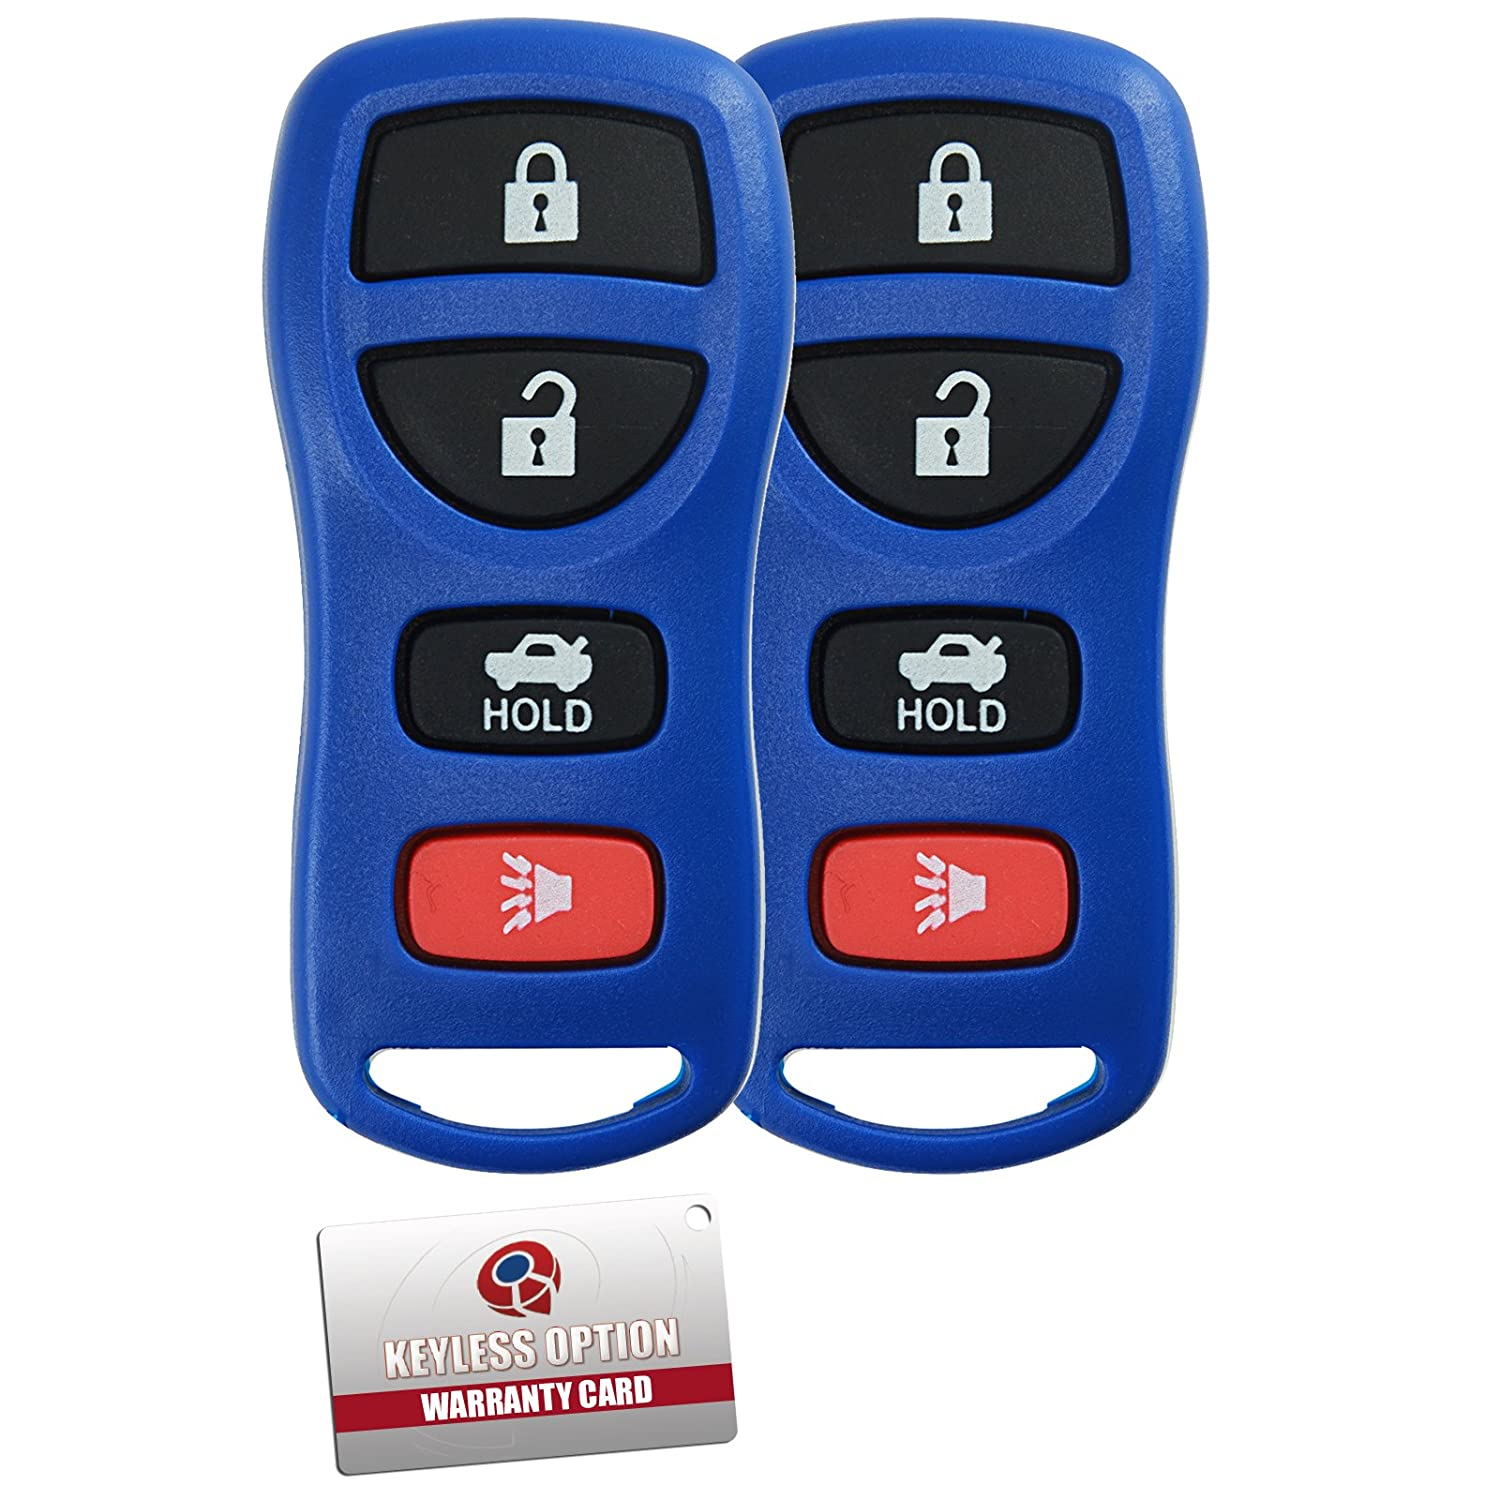 Keylessoption Keyless Entry Remote Control Car Key Fob Clicker Alarm For Nissan Infiniti Kbrastu15 Fits Replacement Blue Pack Of 2 Automotive